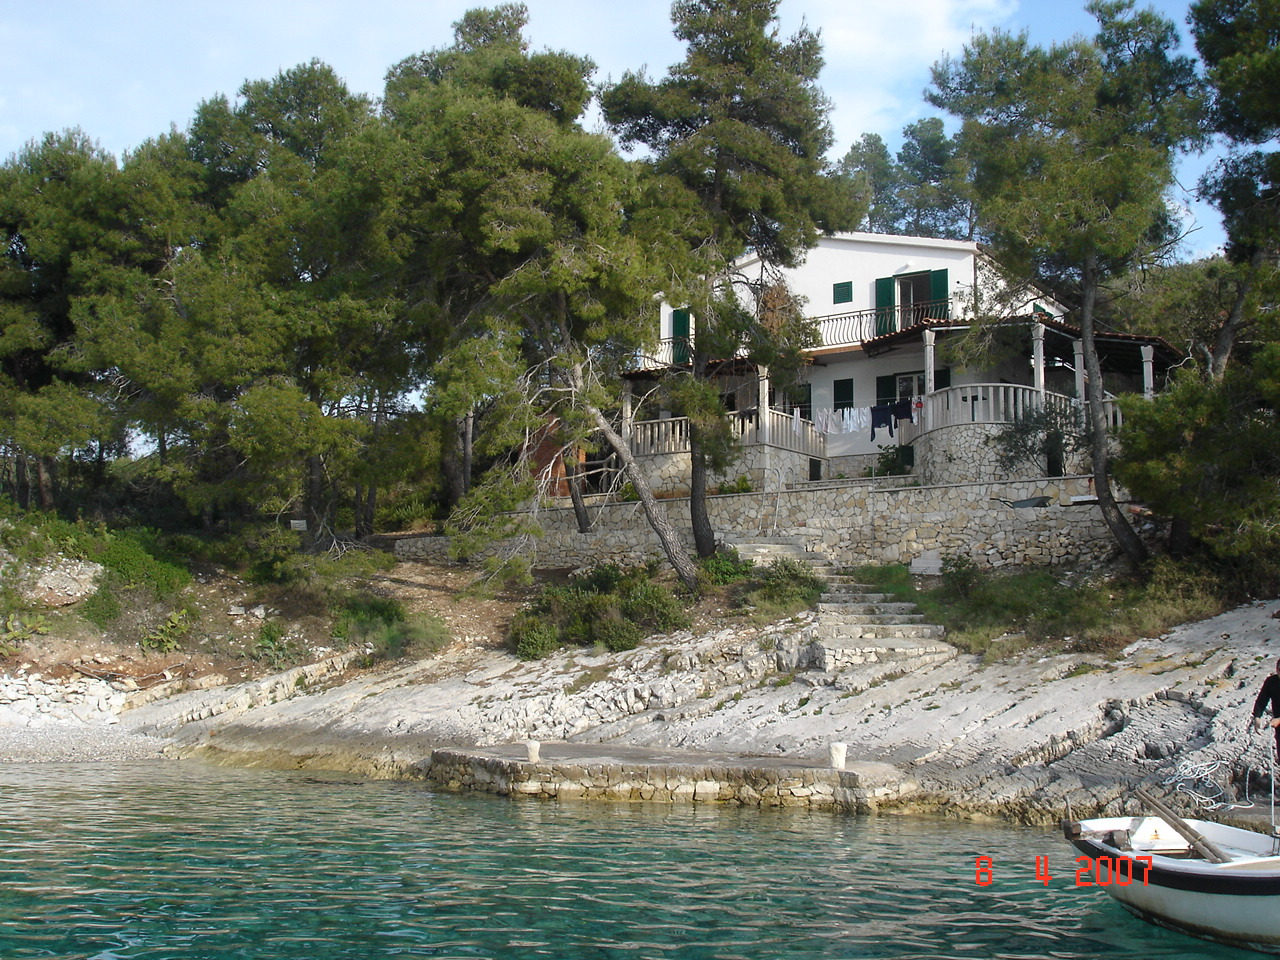 Apartments - OS2022 - Cove Jagodna (Brusje) - Island Hvar  - Croatia